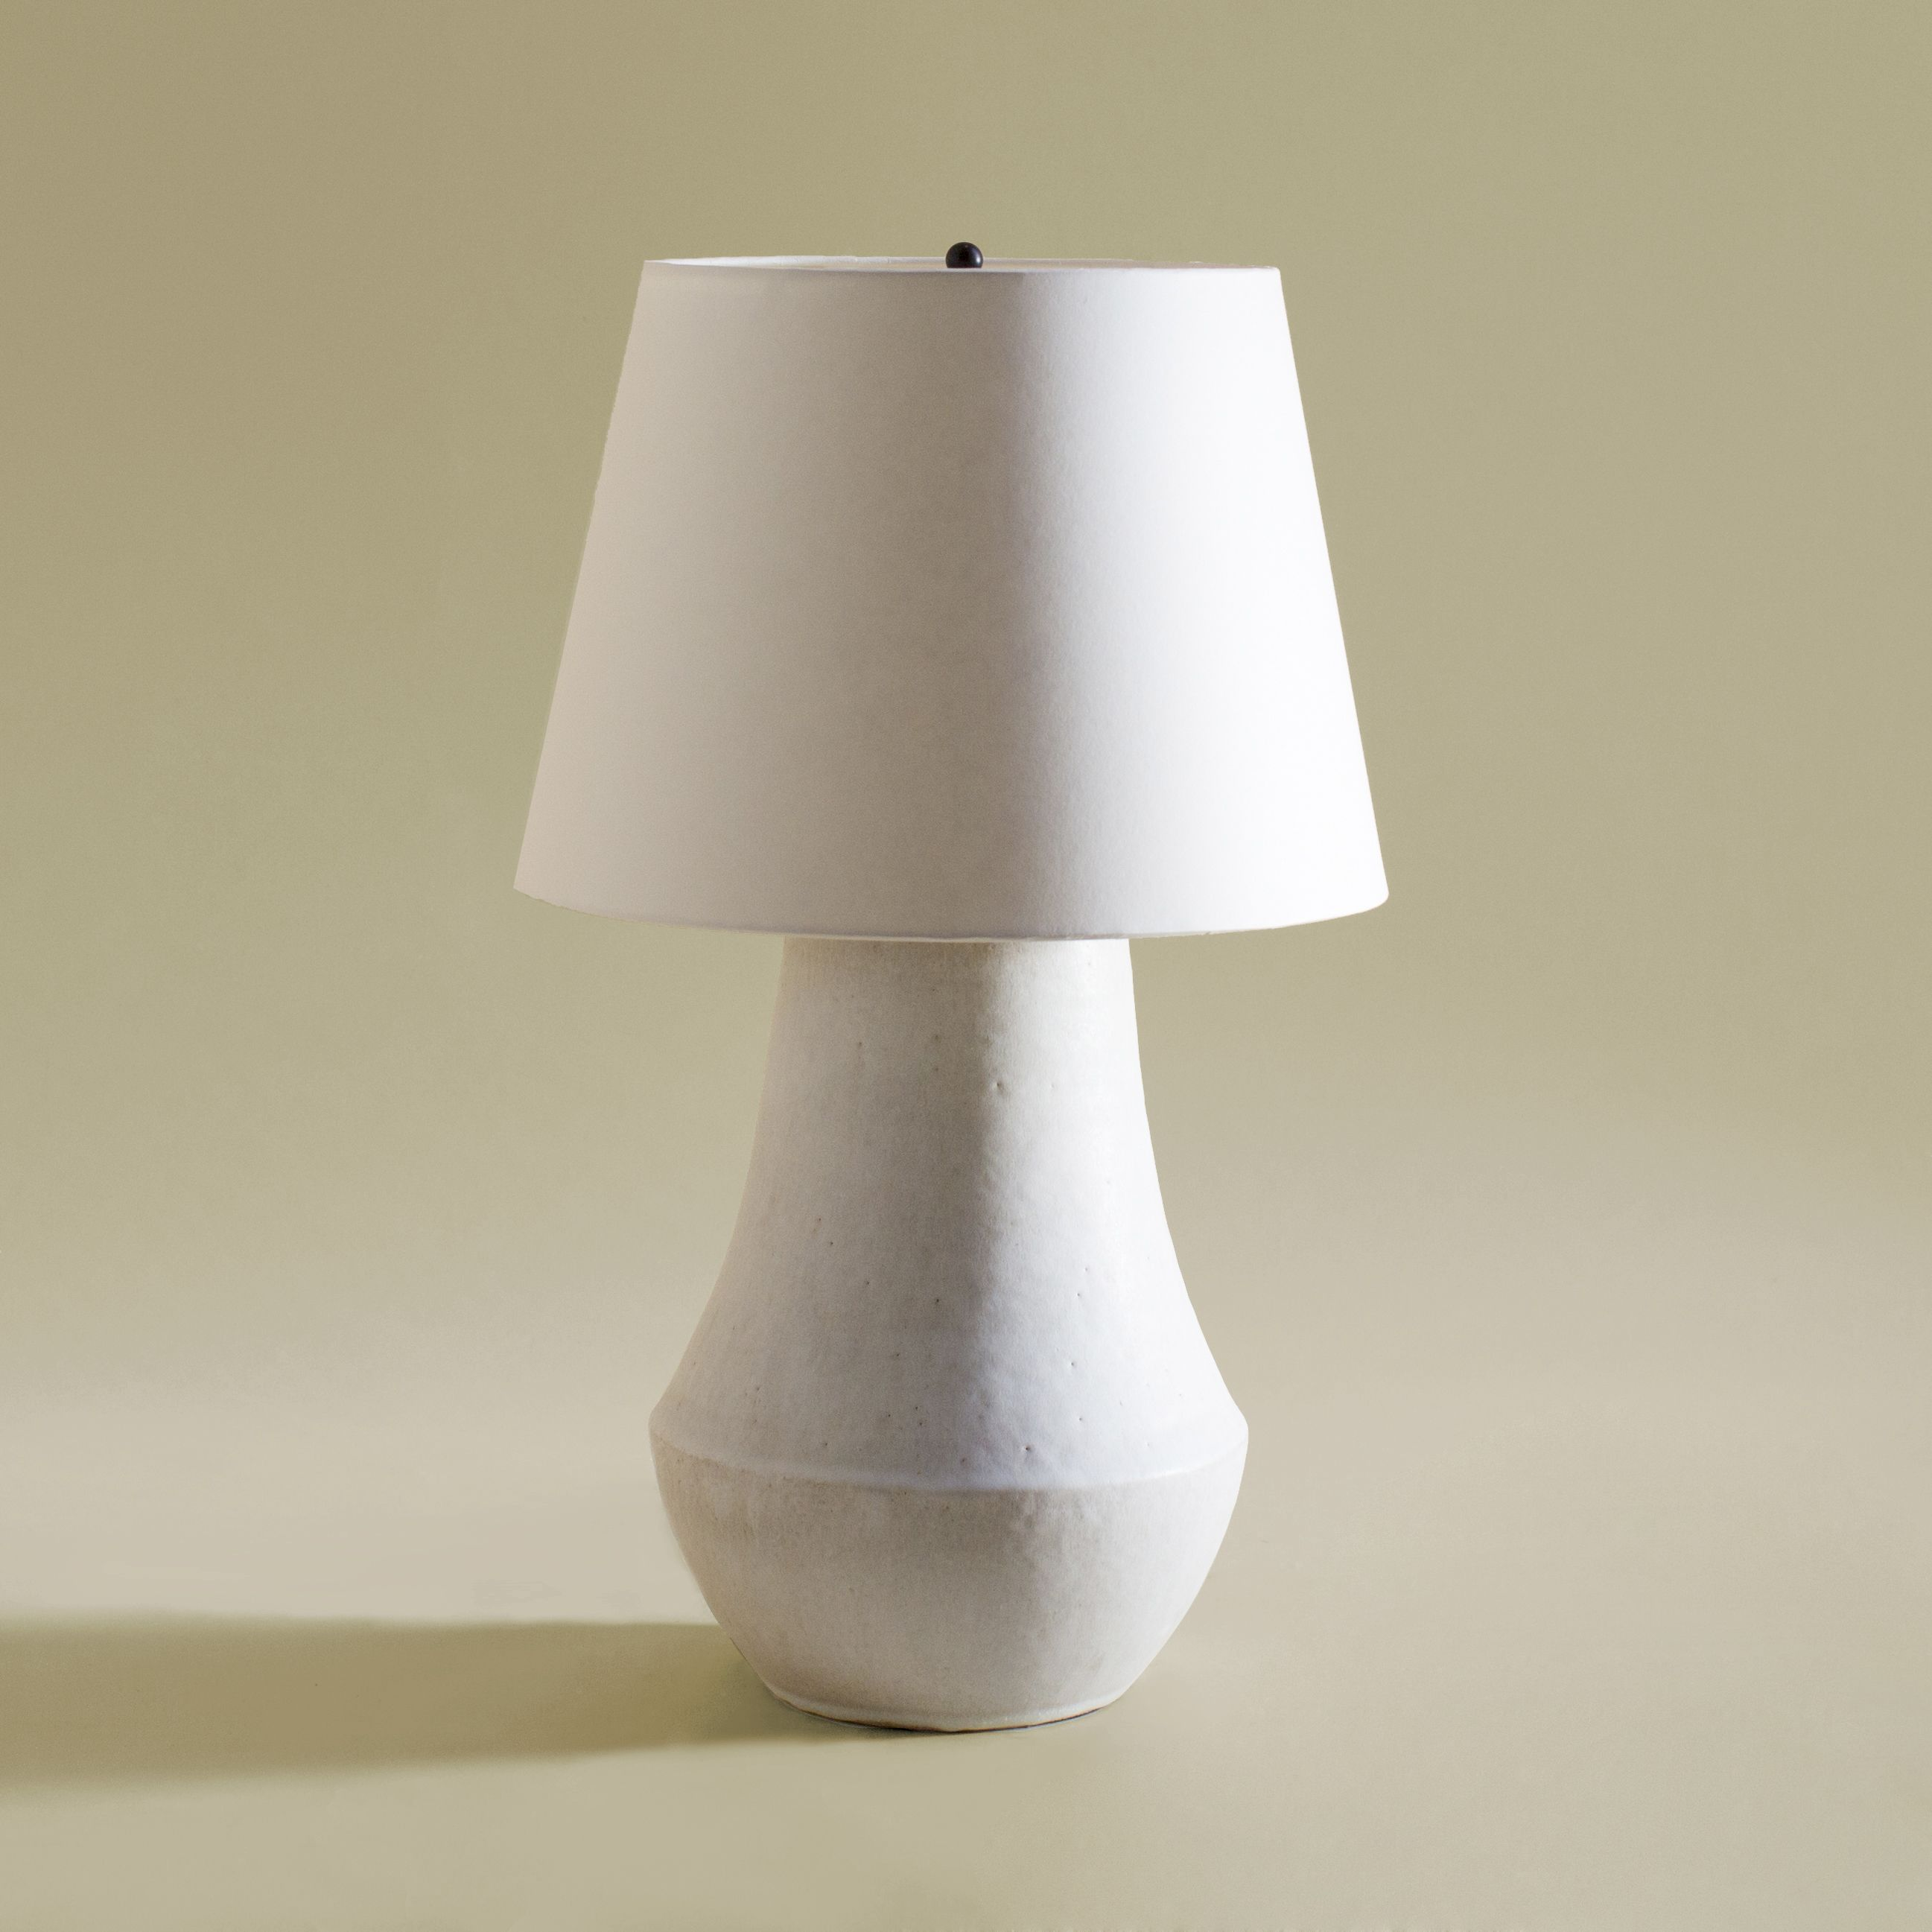 Rose Tarlow Lighting Lamp Light Home